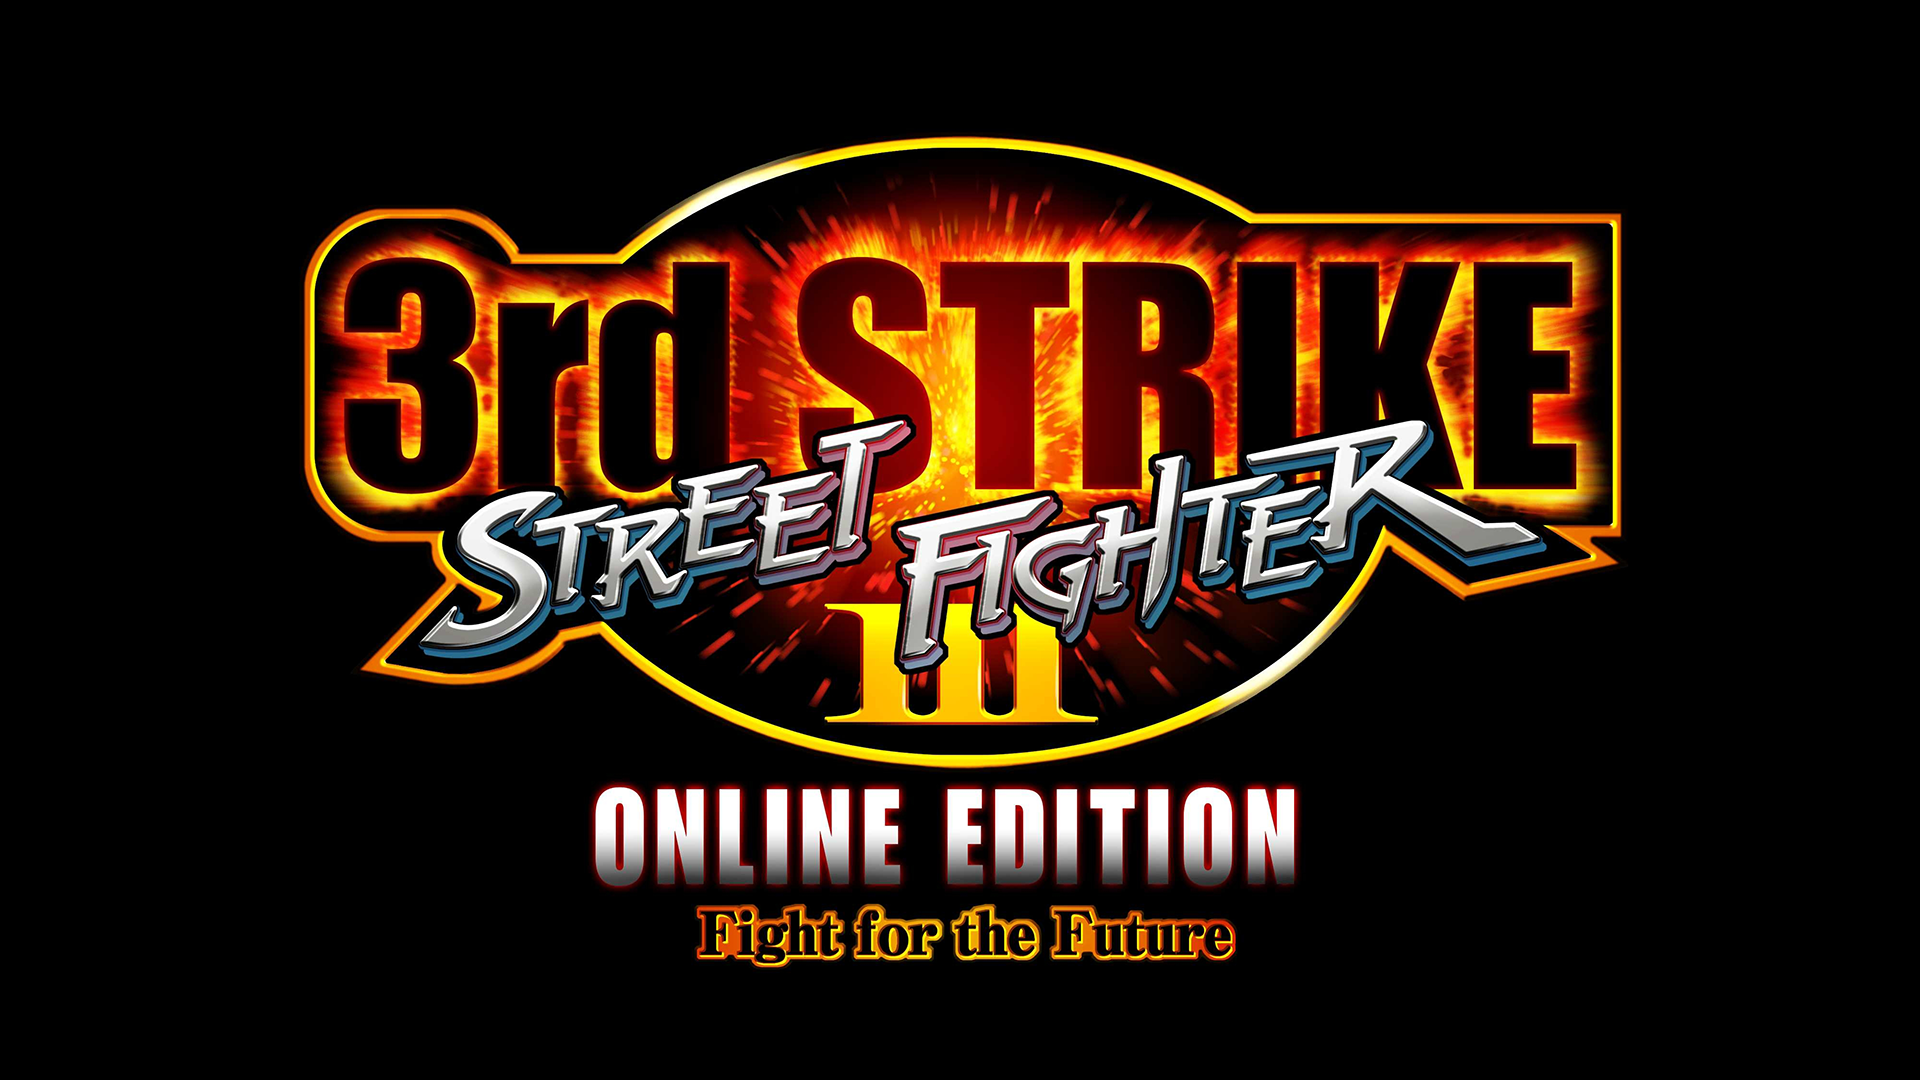 Street Fighter III: Third Strike Online Edition Logo